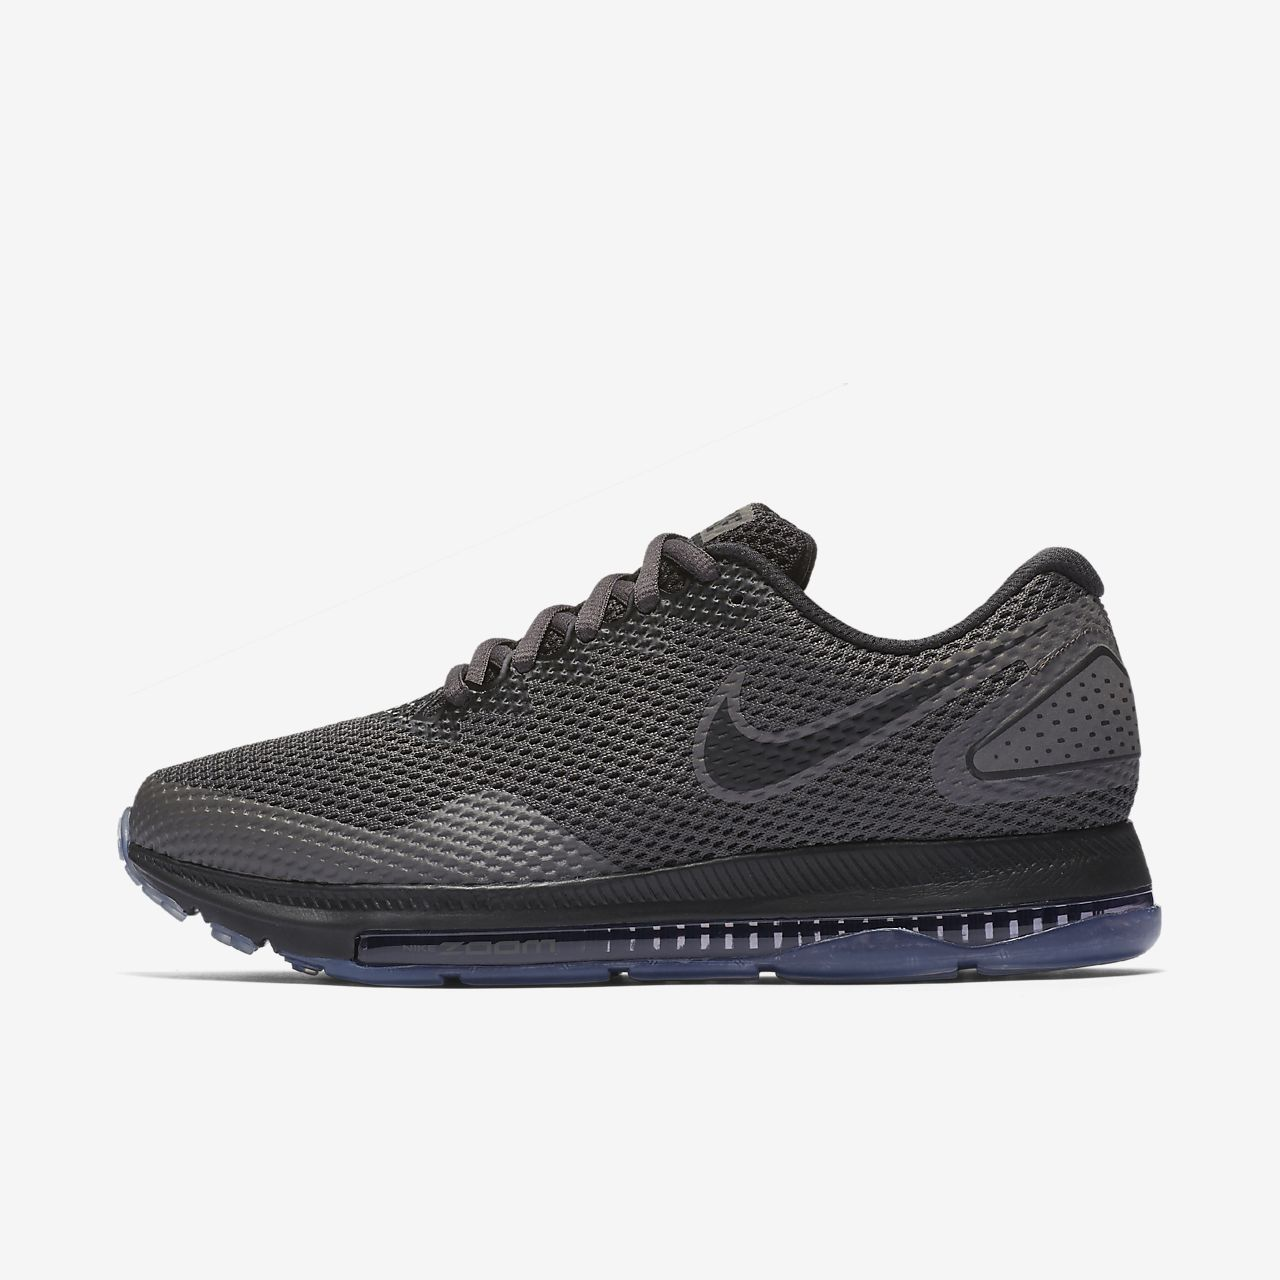 WMNS NIKE ZOOM ALL OUT LOW 2 MOON PARTICLE RUNNING WOMEN